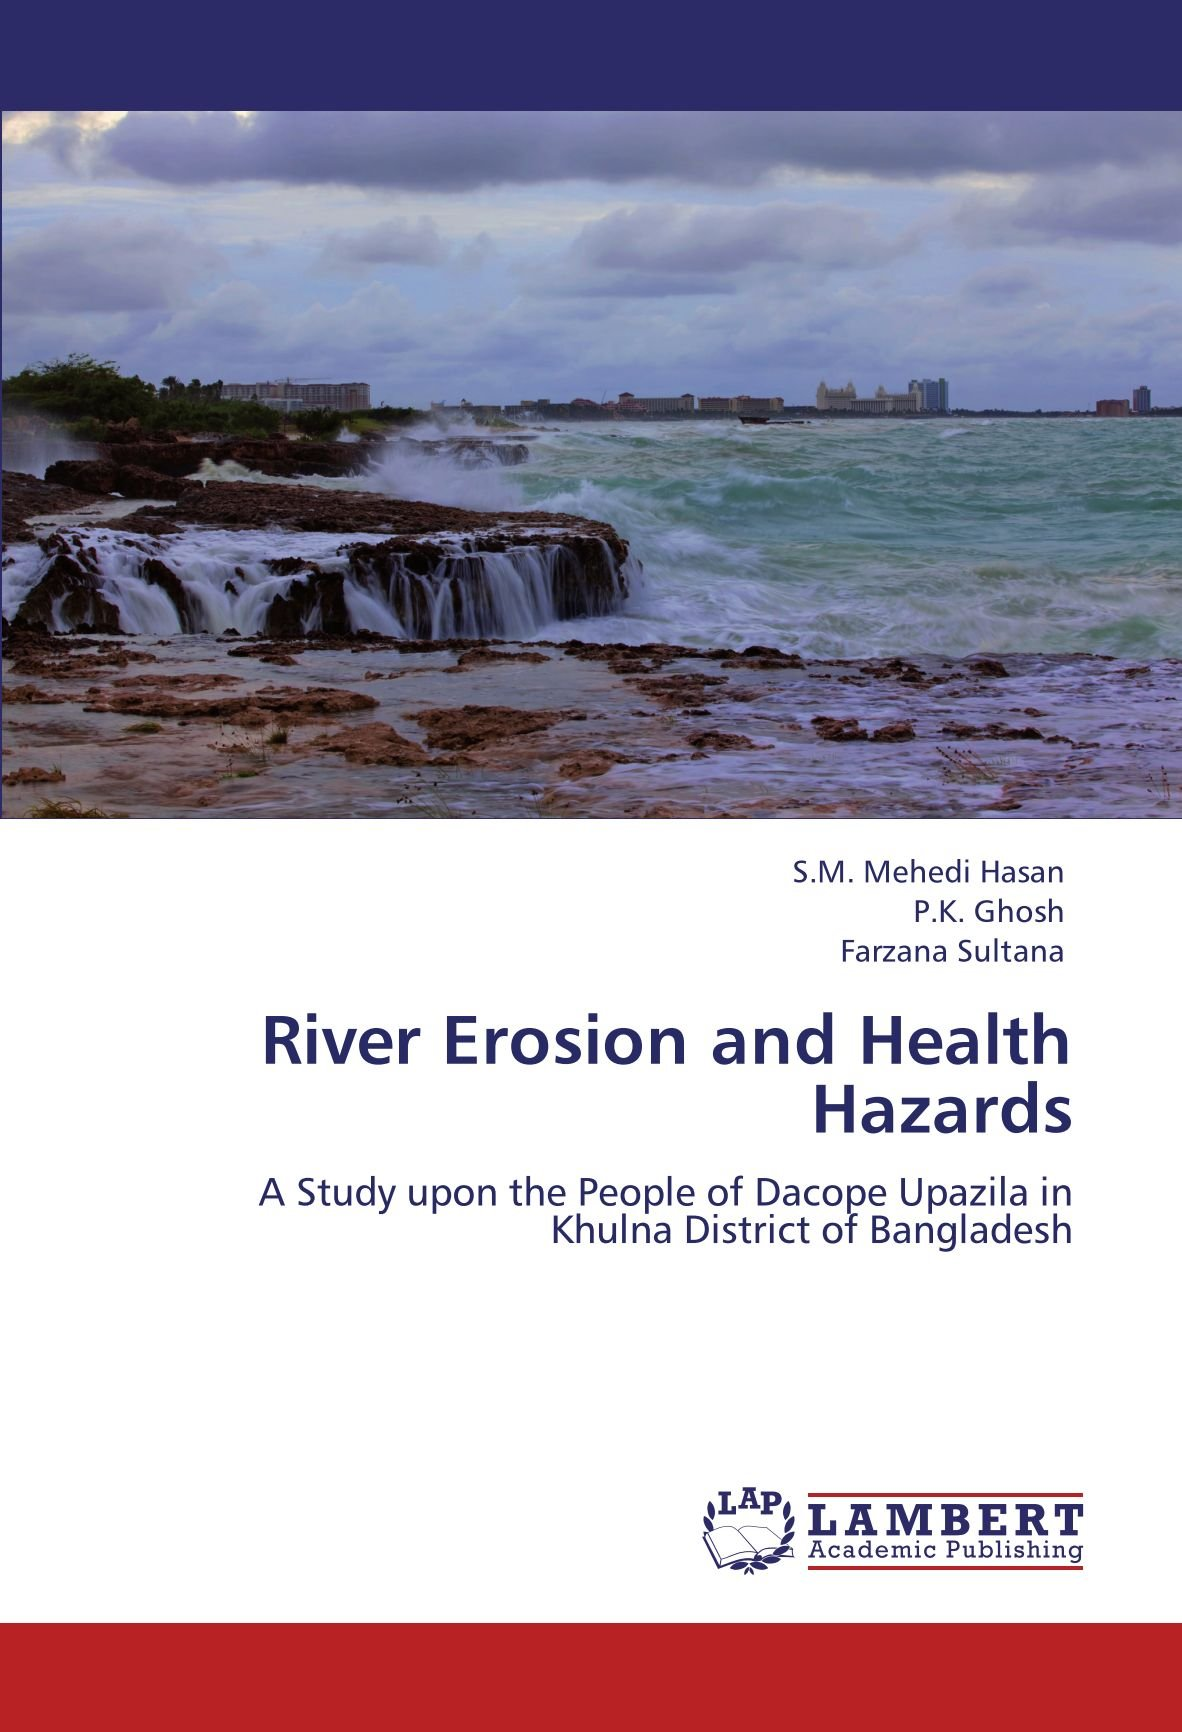 River Erosion and Health Hazards: A Study upon the People of